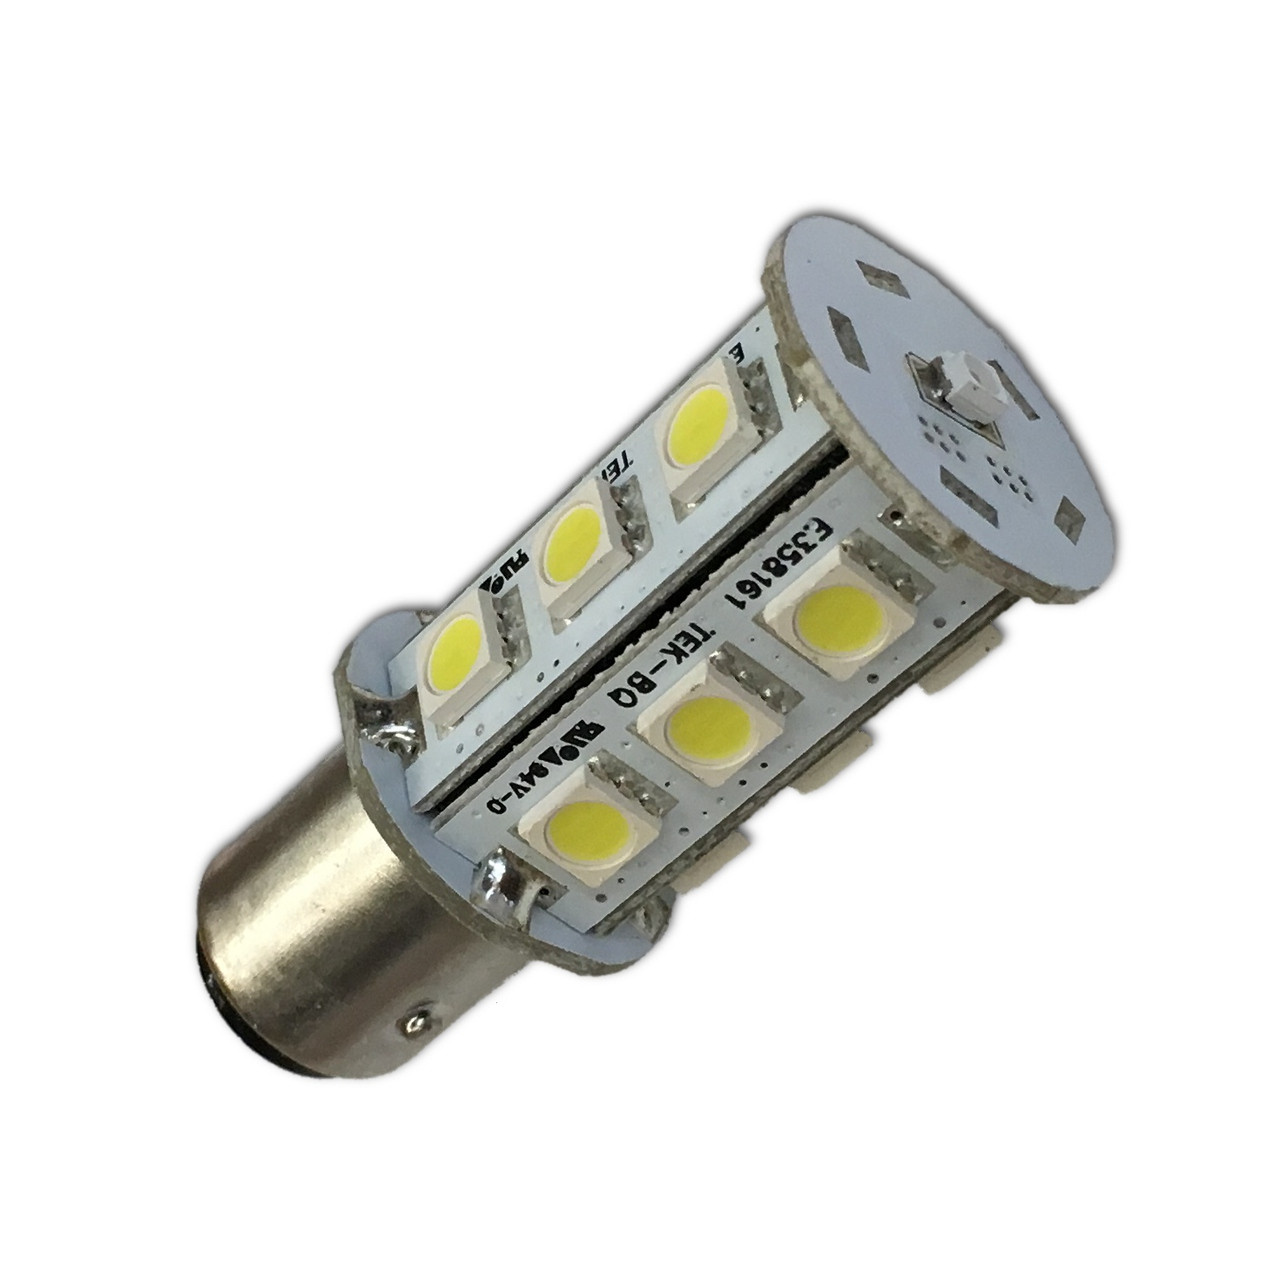 hight resolution of dusk to dawn photocell automatic anchor light led replacement bulb